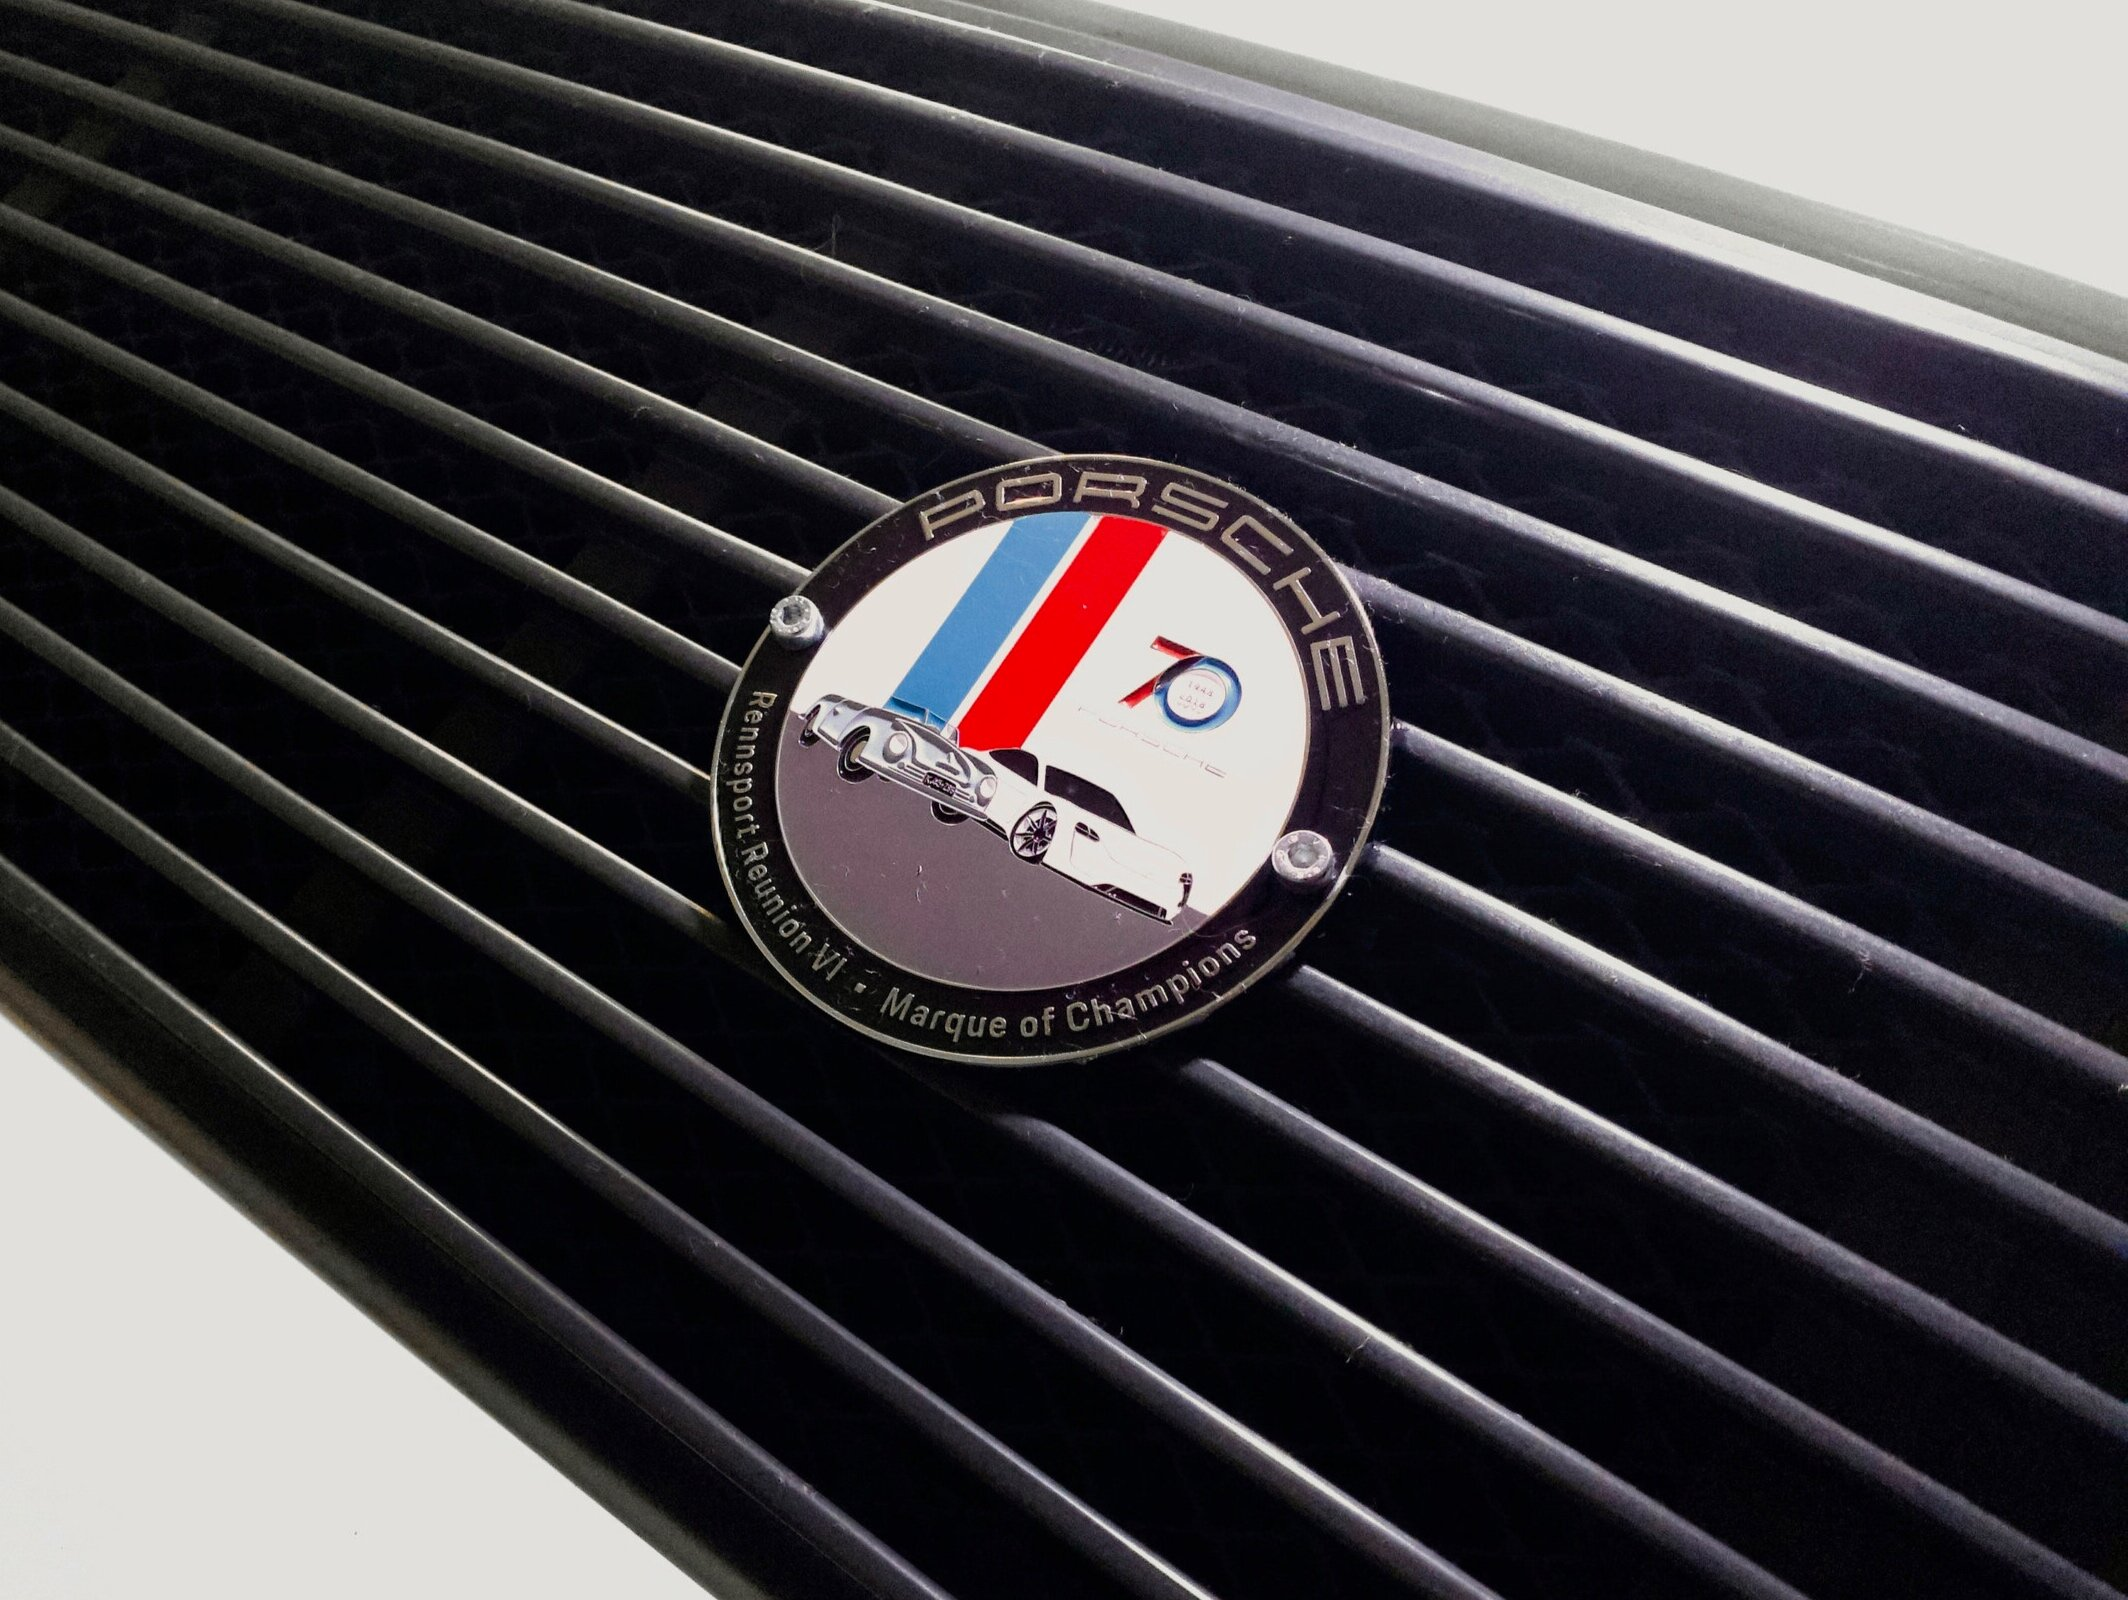 One of the coolest things from Rennsport was this grill badge, which they gave out for people completing a photo game in the RRVI app. It's a perfect match! -